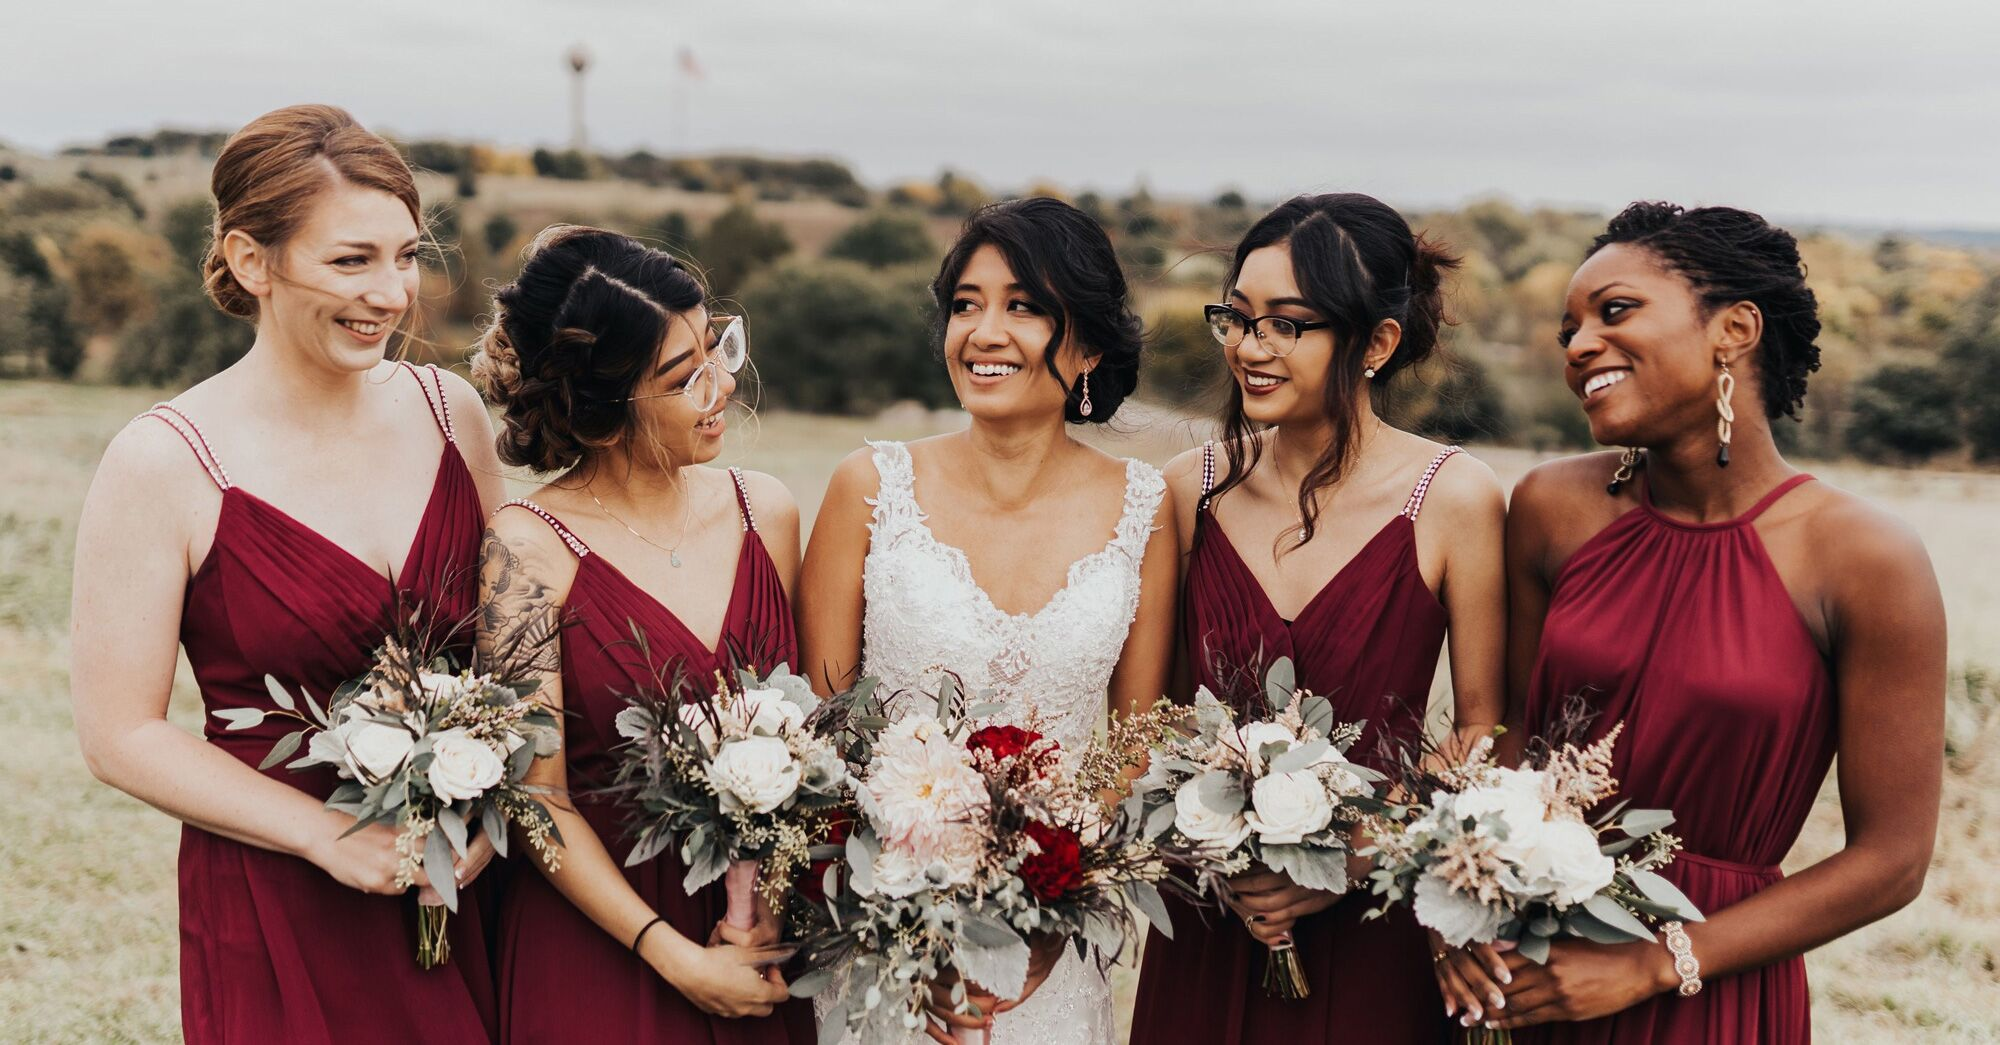 49 Stunning Bridesmaid Hairstyle Ideas For Any Wedding